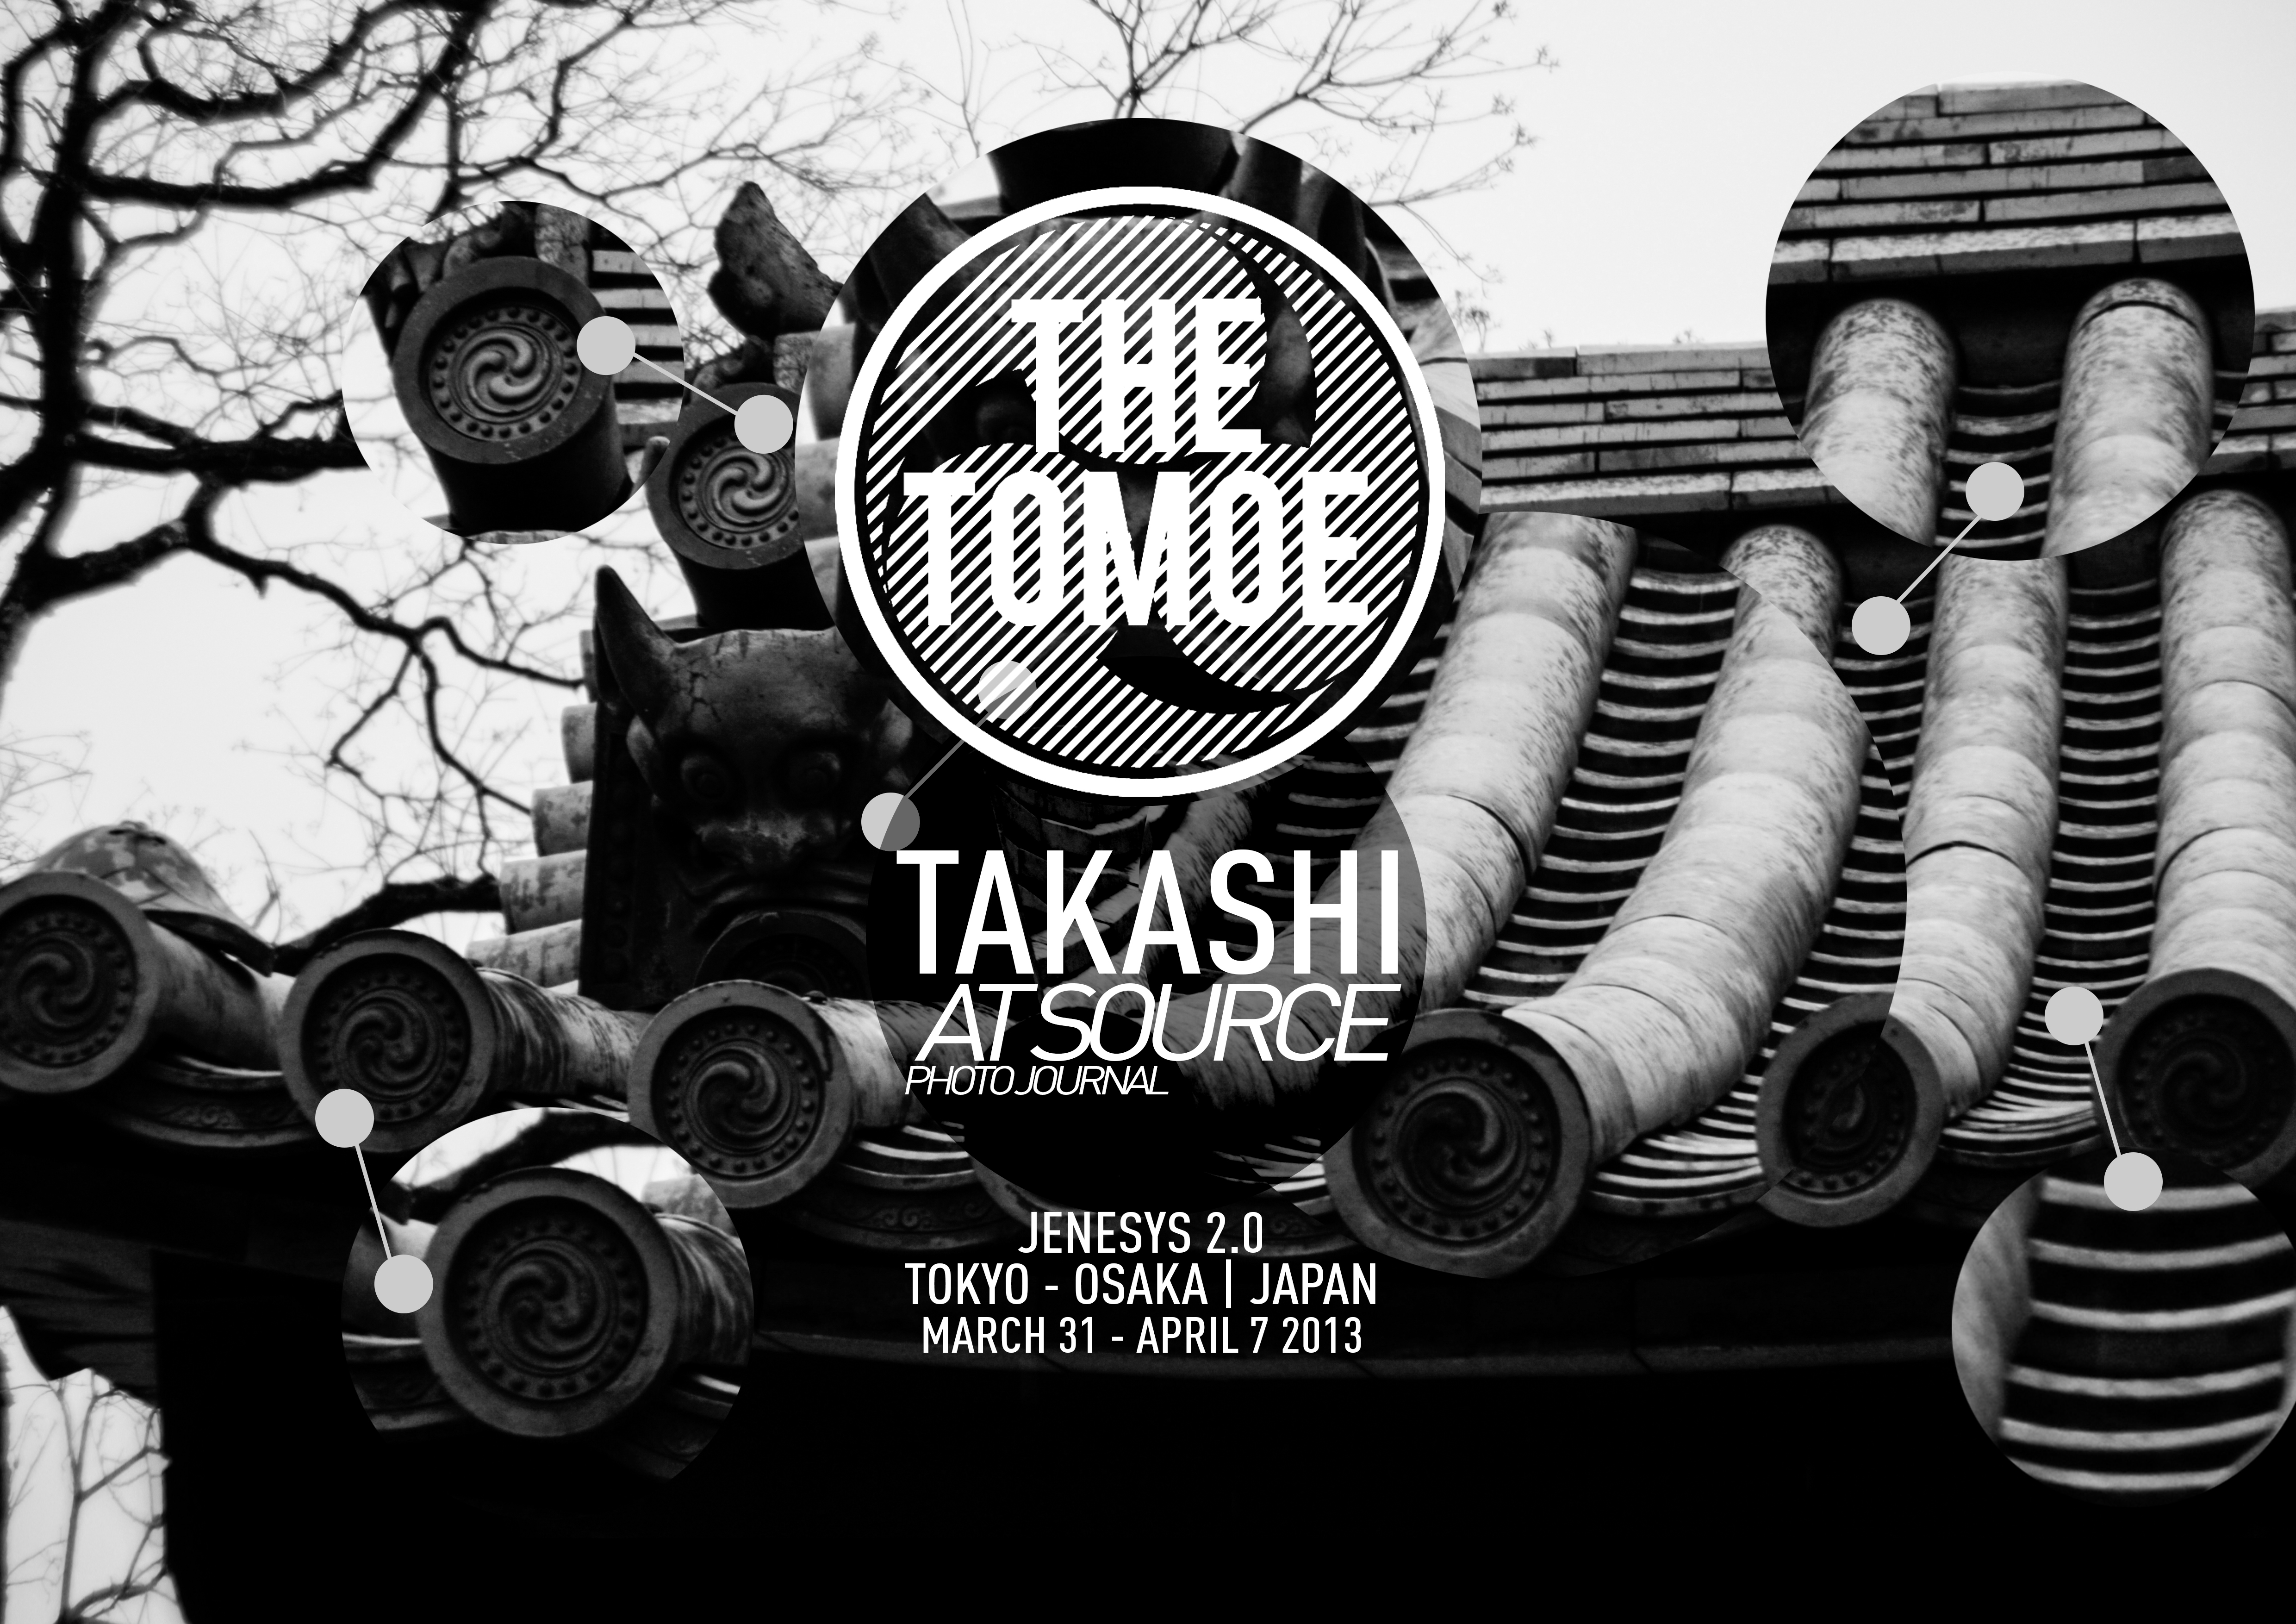 TAKASHI AT SOURCE poster